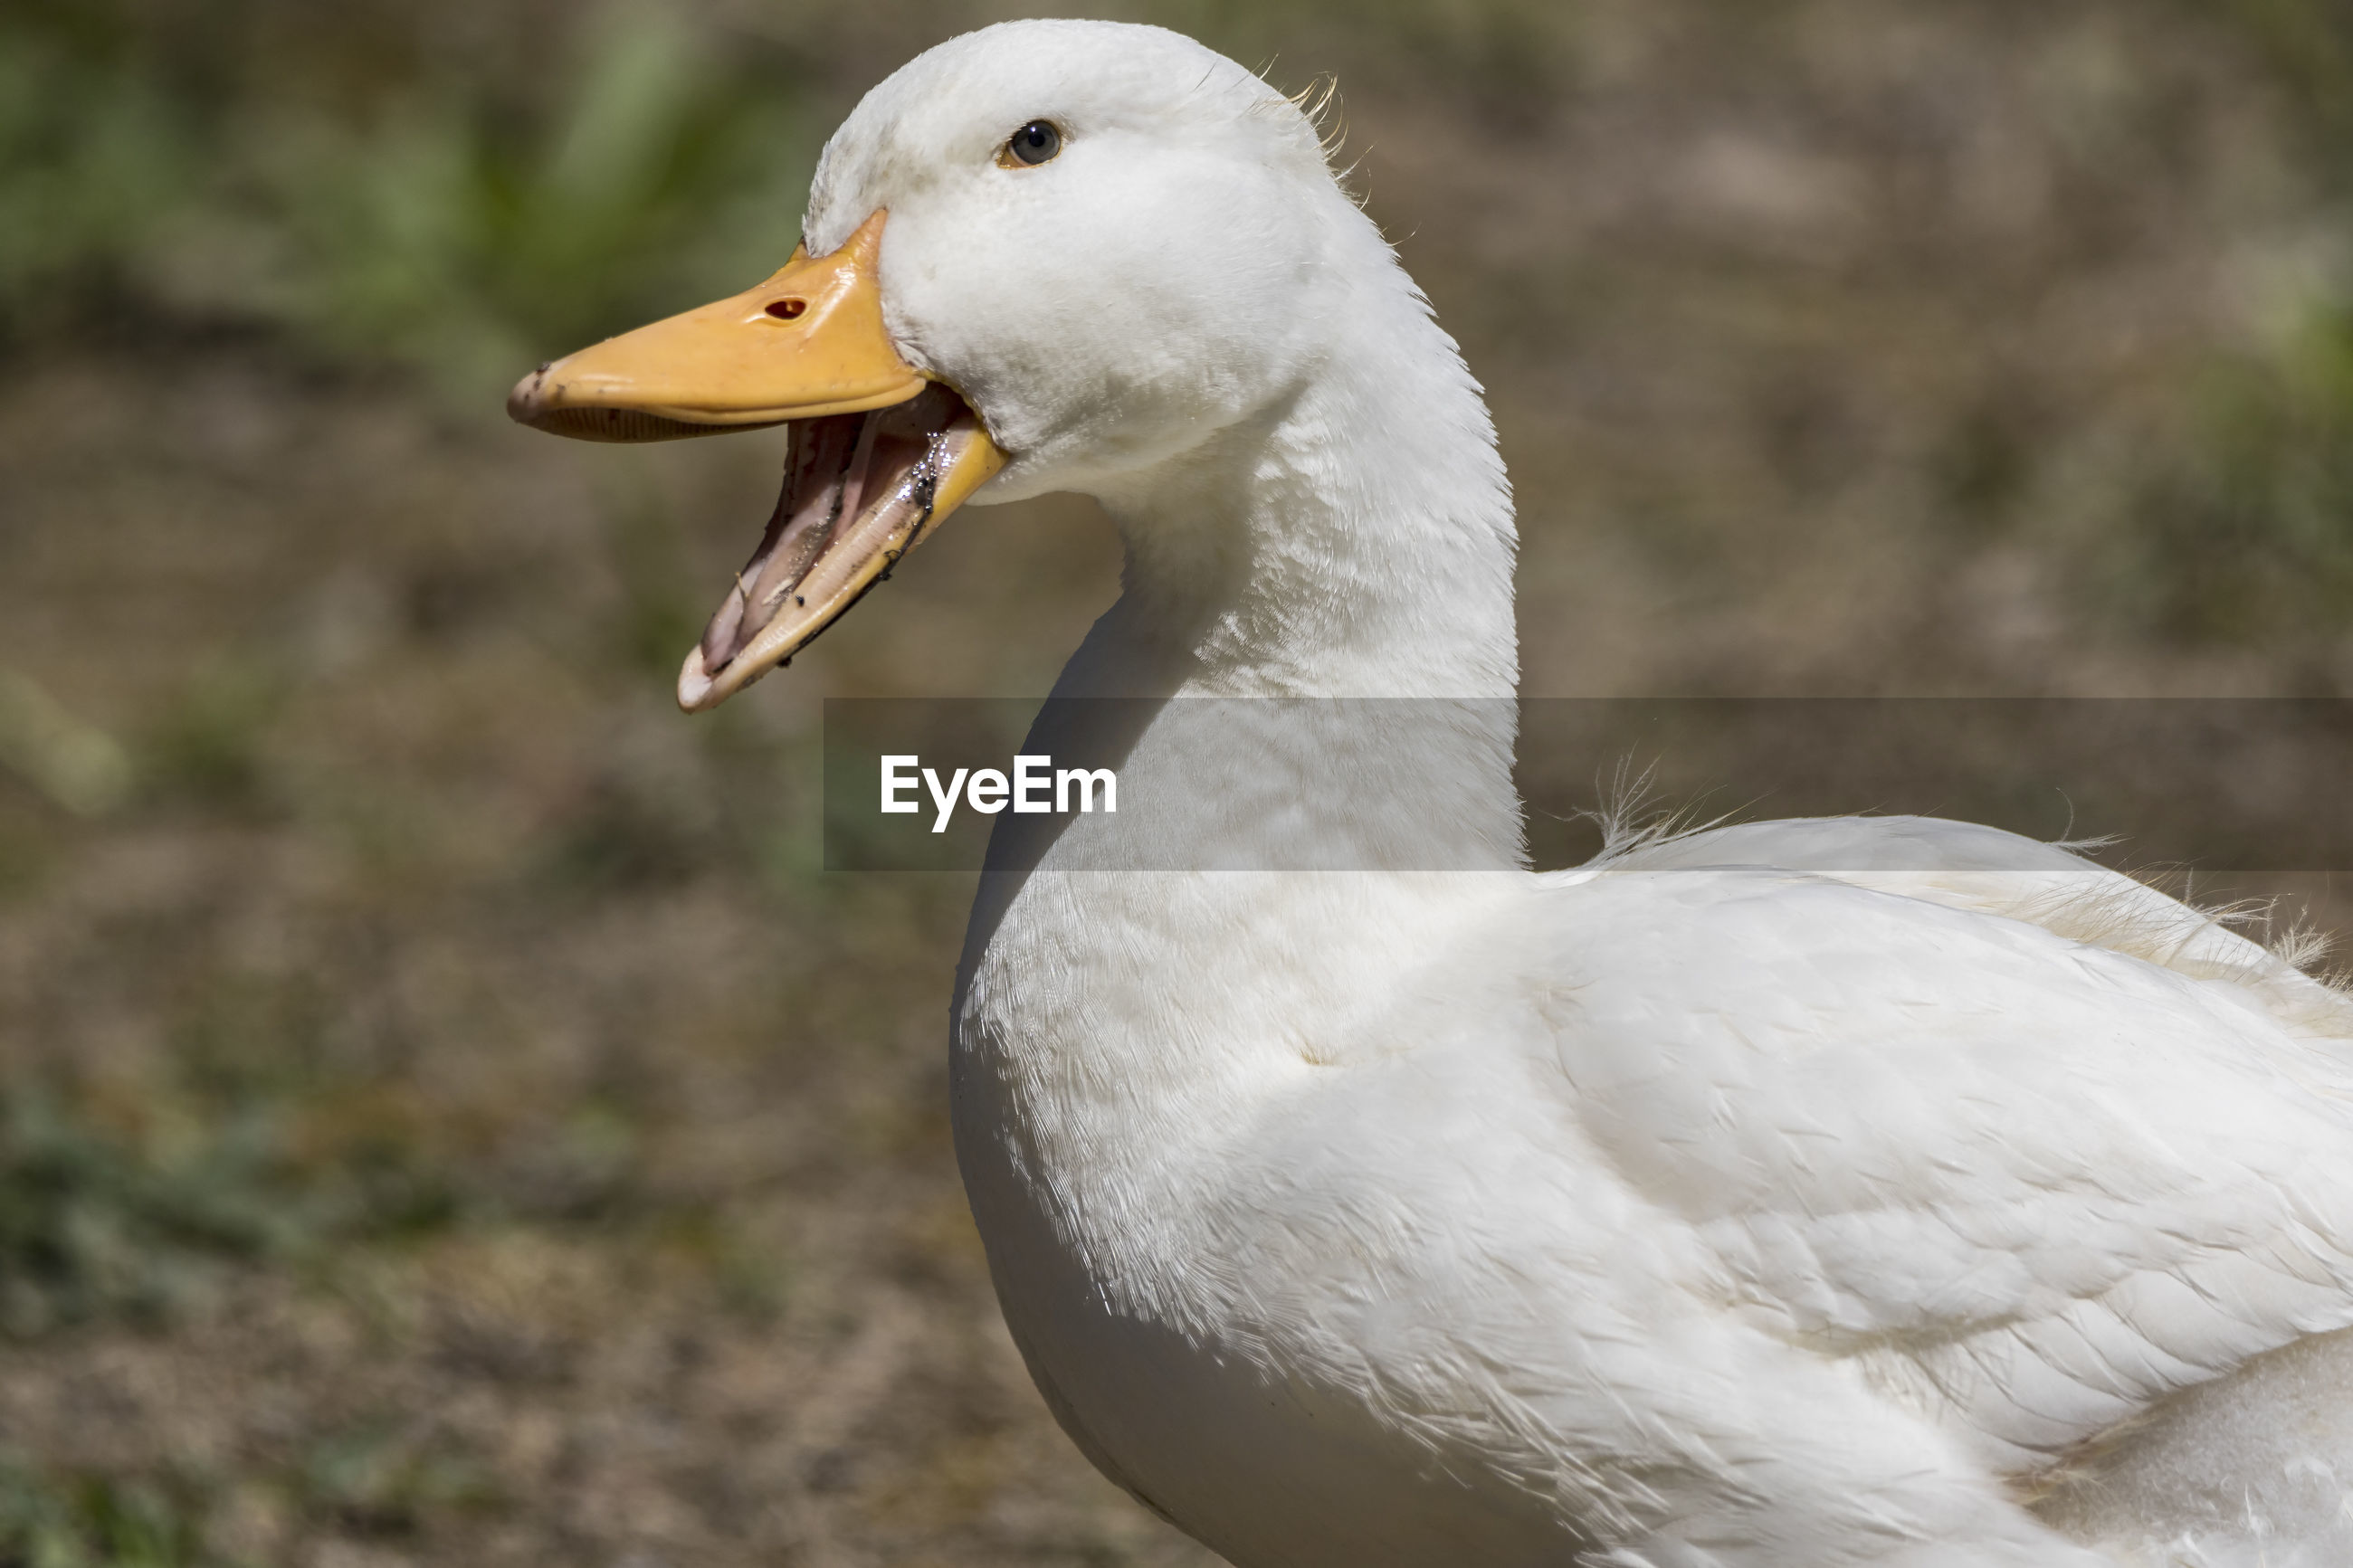 animal themes, bird, animal, vertebrate, animals in the wild, animal wildlife, one animal, focus on foreground, close-up, white color, no people, beak, day, nature, swan, animal body part, water bird, goose, side view, looking, animal head, mouth open, animal neck